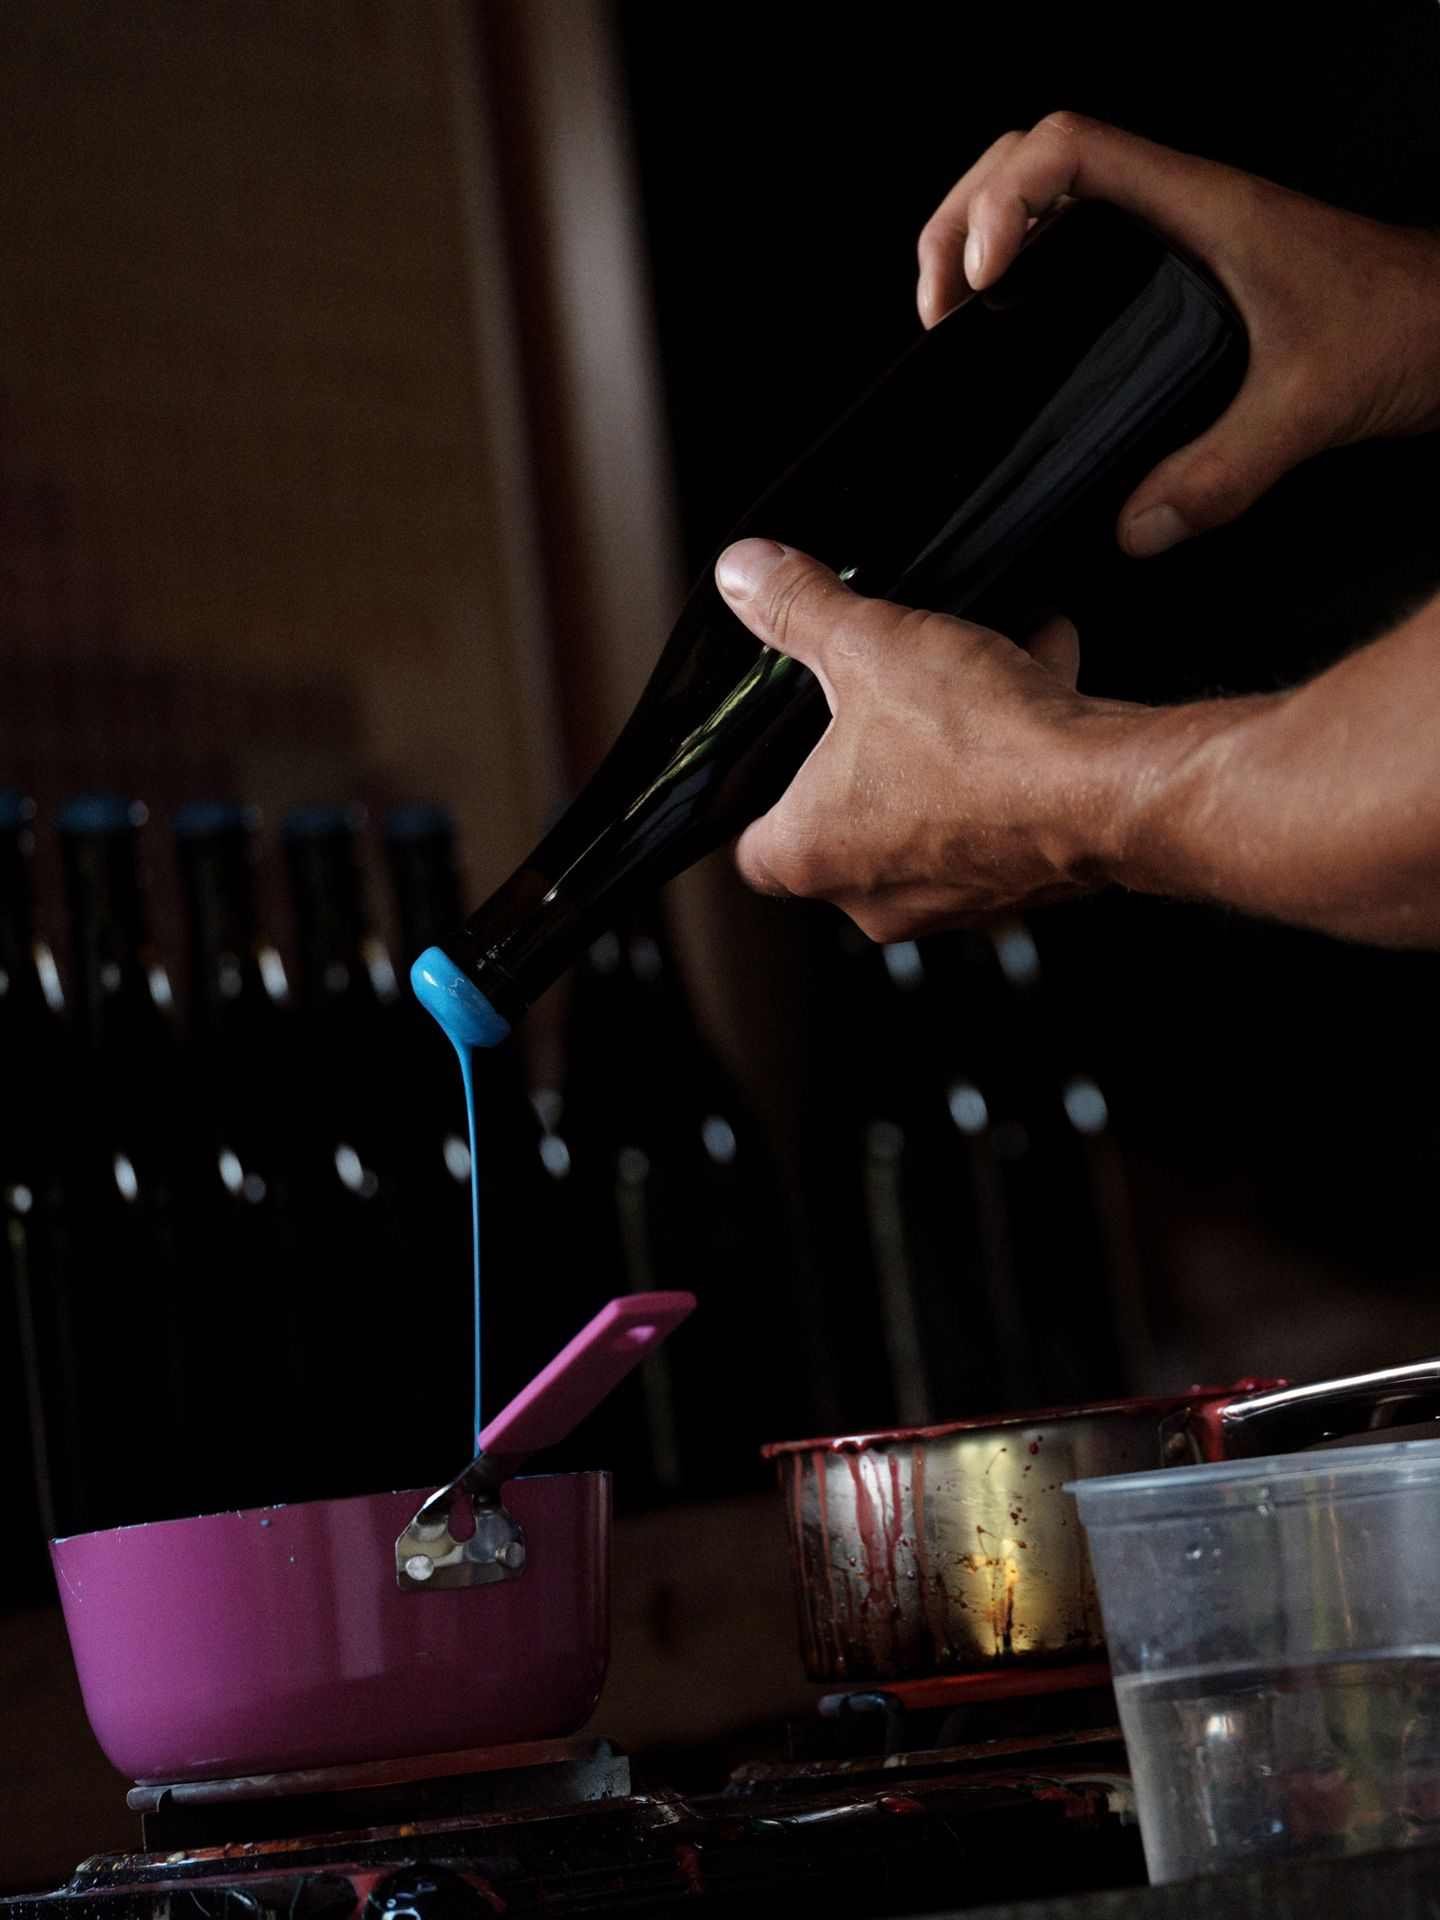 close up of winemaker from Pinard & Filles sealing wine bottles with light blue wax by Alexi Hobbs for Larose Paris